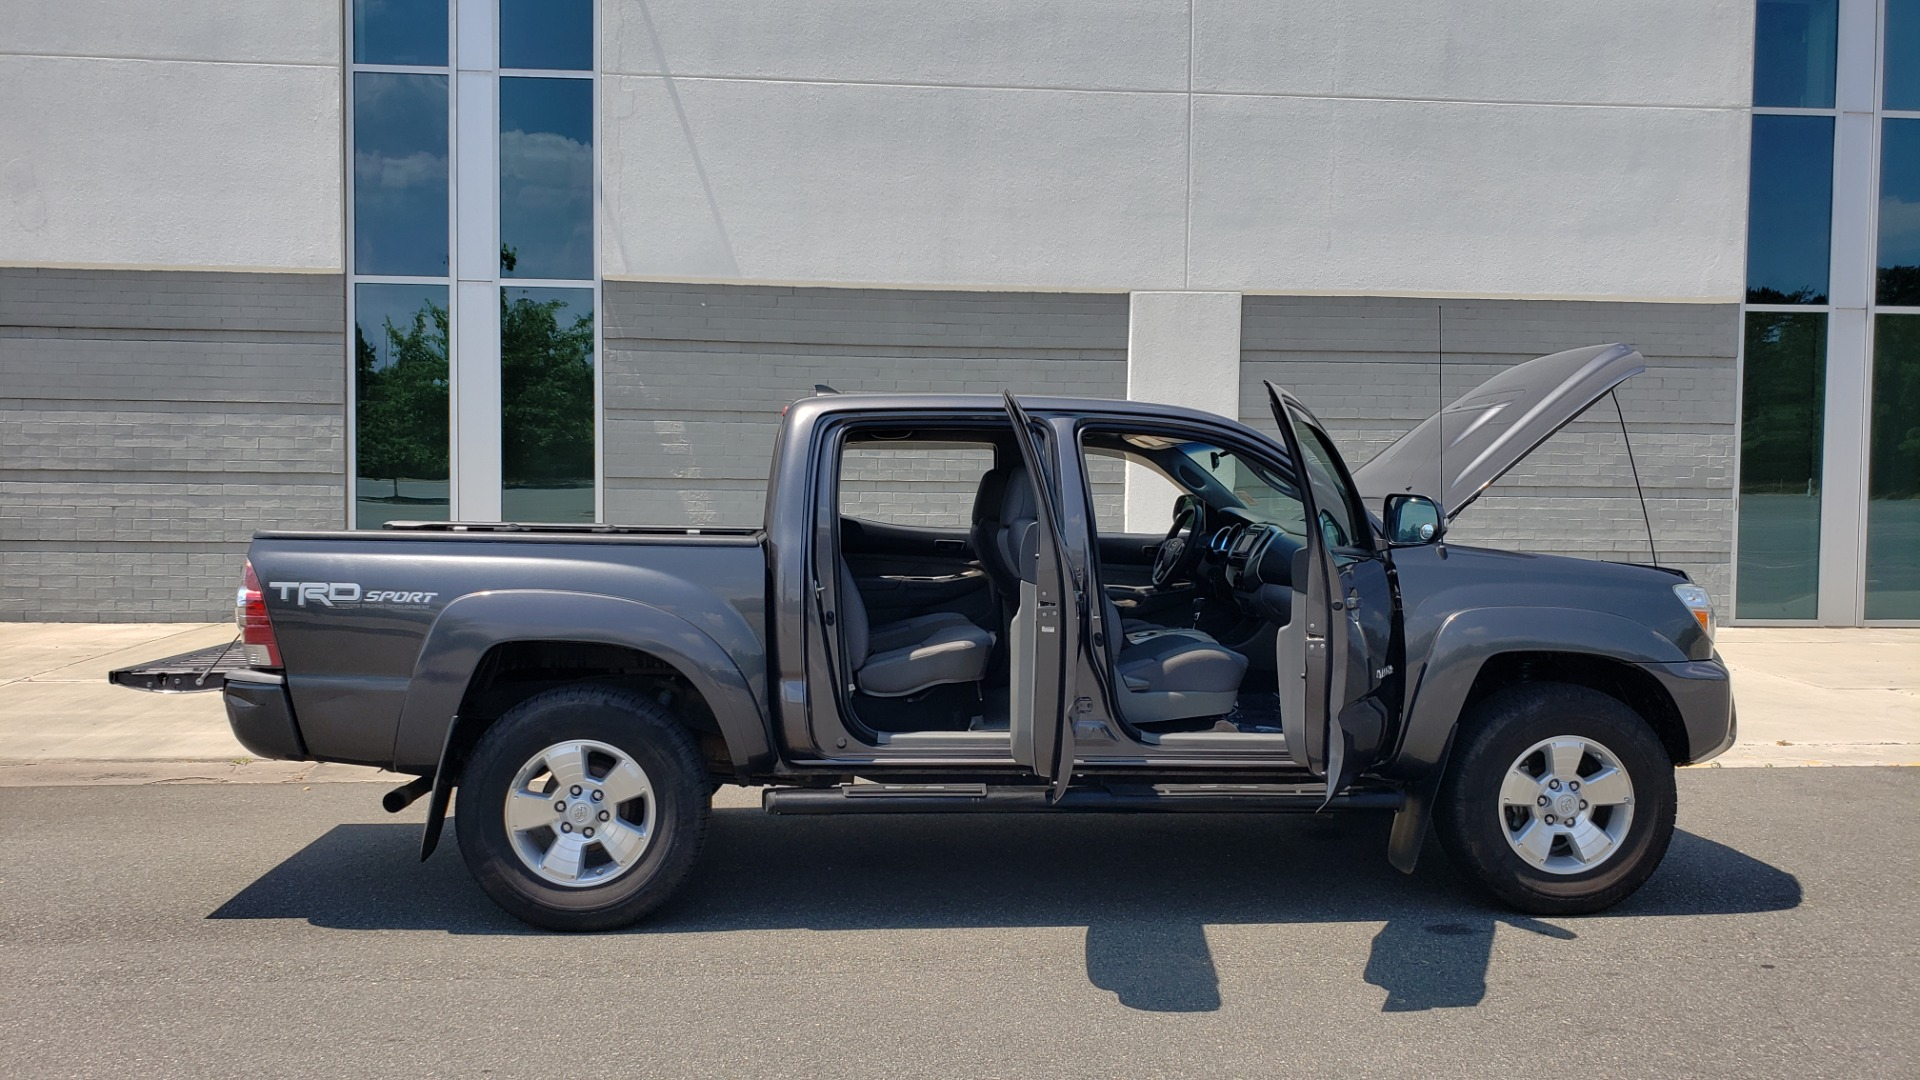 Used 2014 Toyota TACOMA PRERUNNER DOUBLECAB / TRD SPORT / V6 / 5-SPD AUTO / TOW PKG for sale $21,595 at Formula Imports in Charlotte NC 28227 10